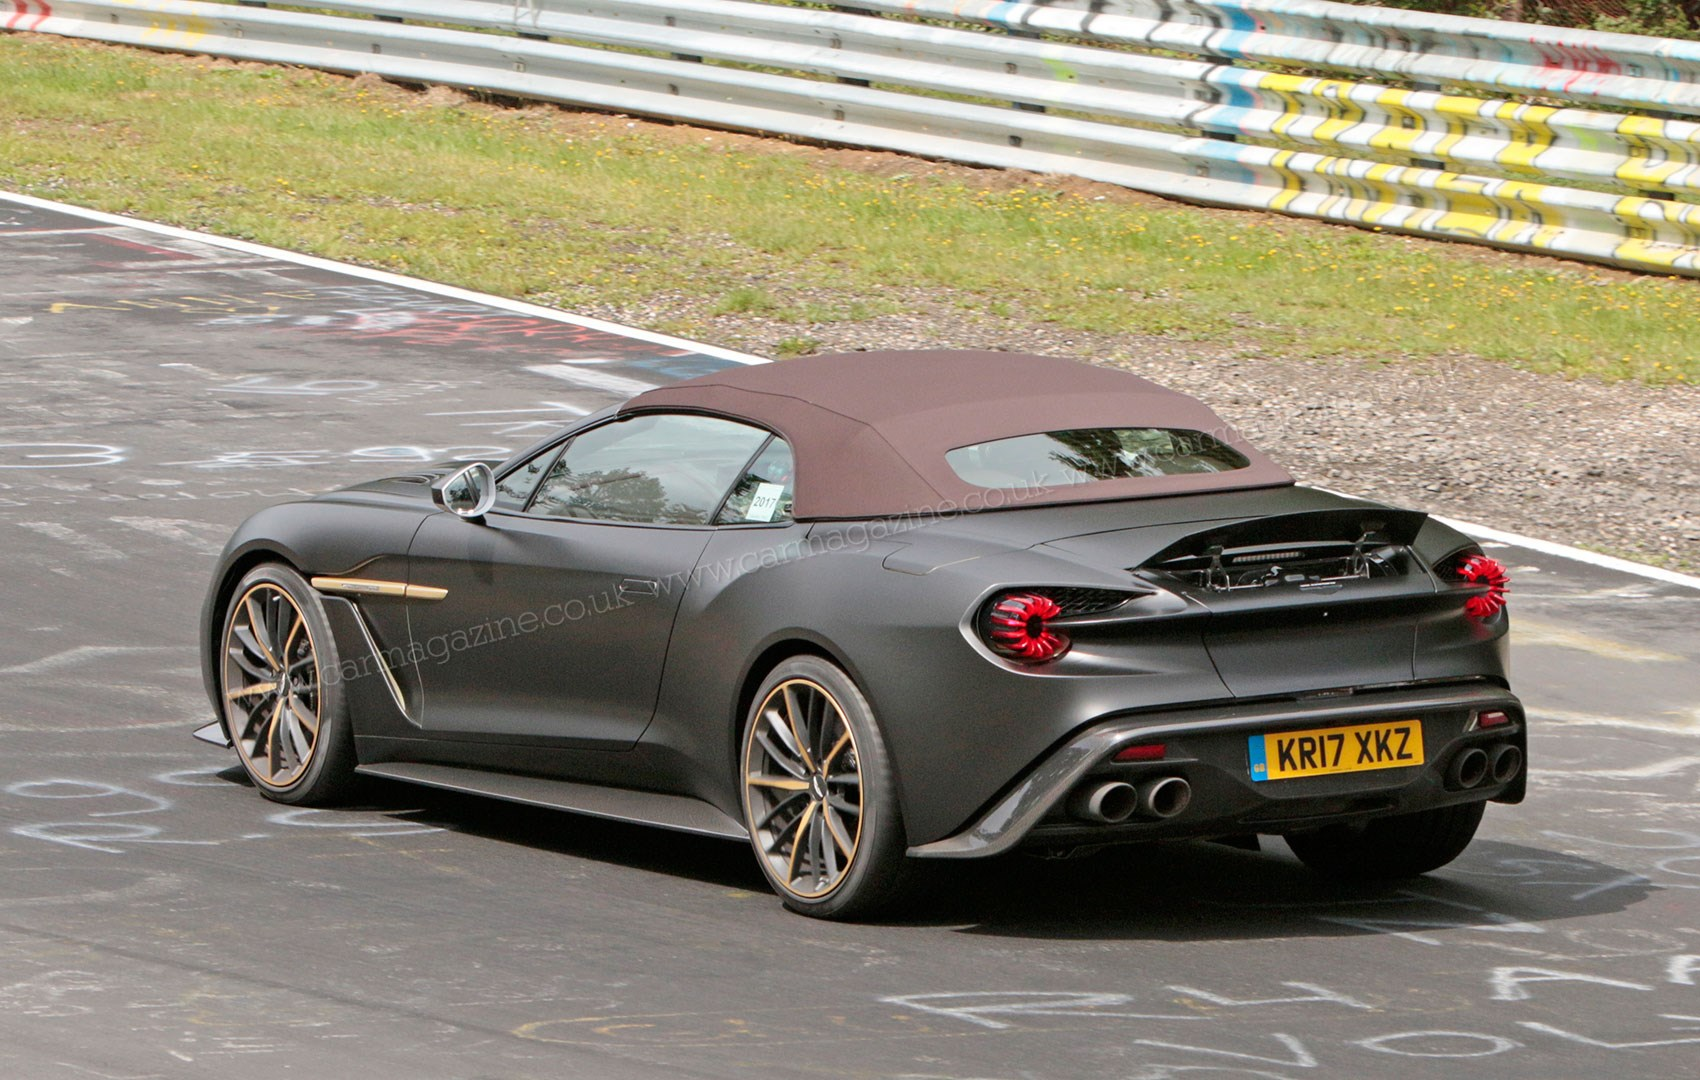 Aston Martin Vanquish Zagato Volante And Speedster Spy Photos - Aston martin volante